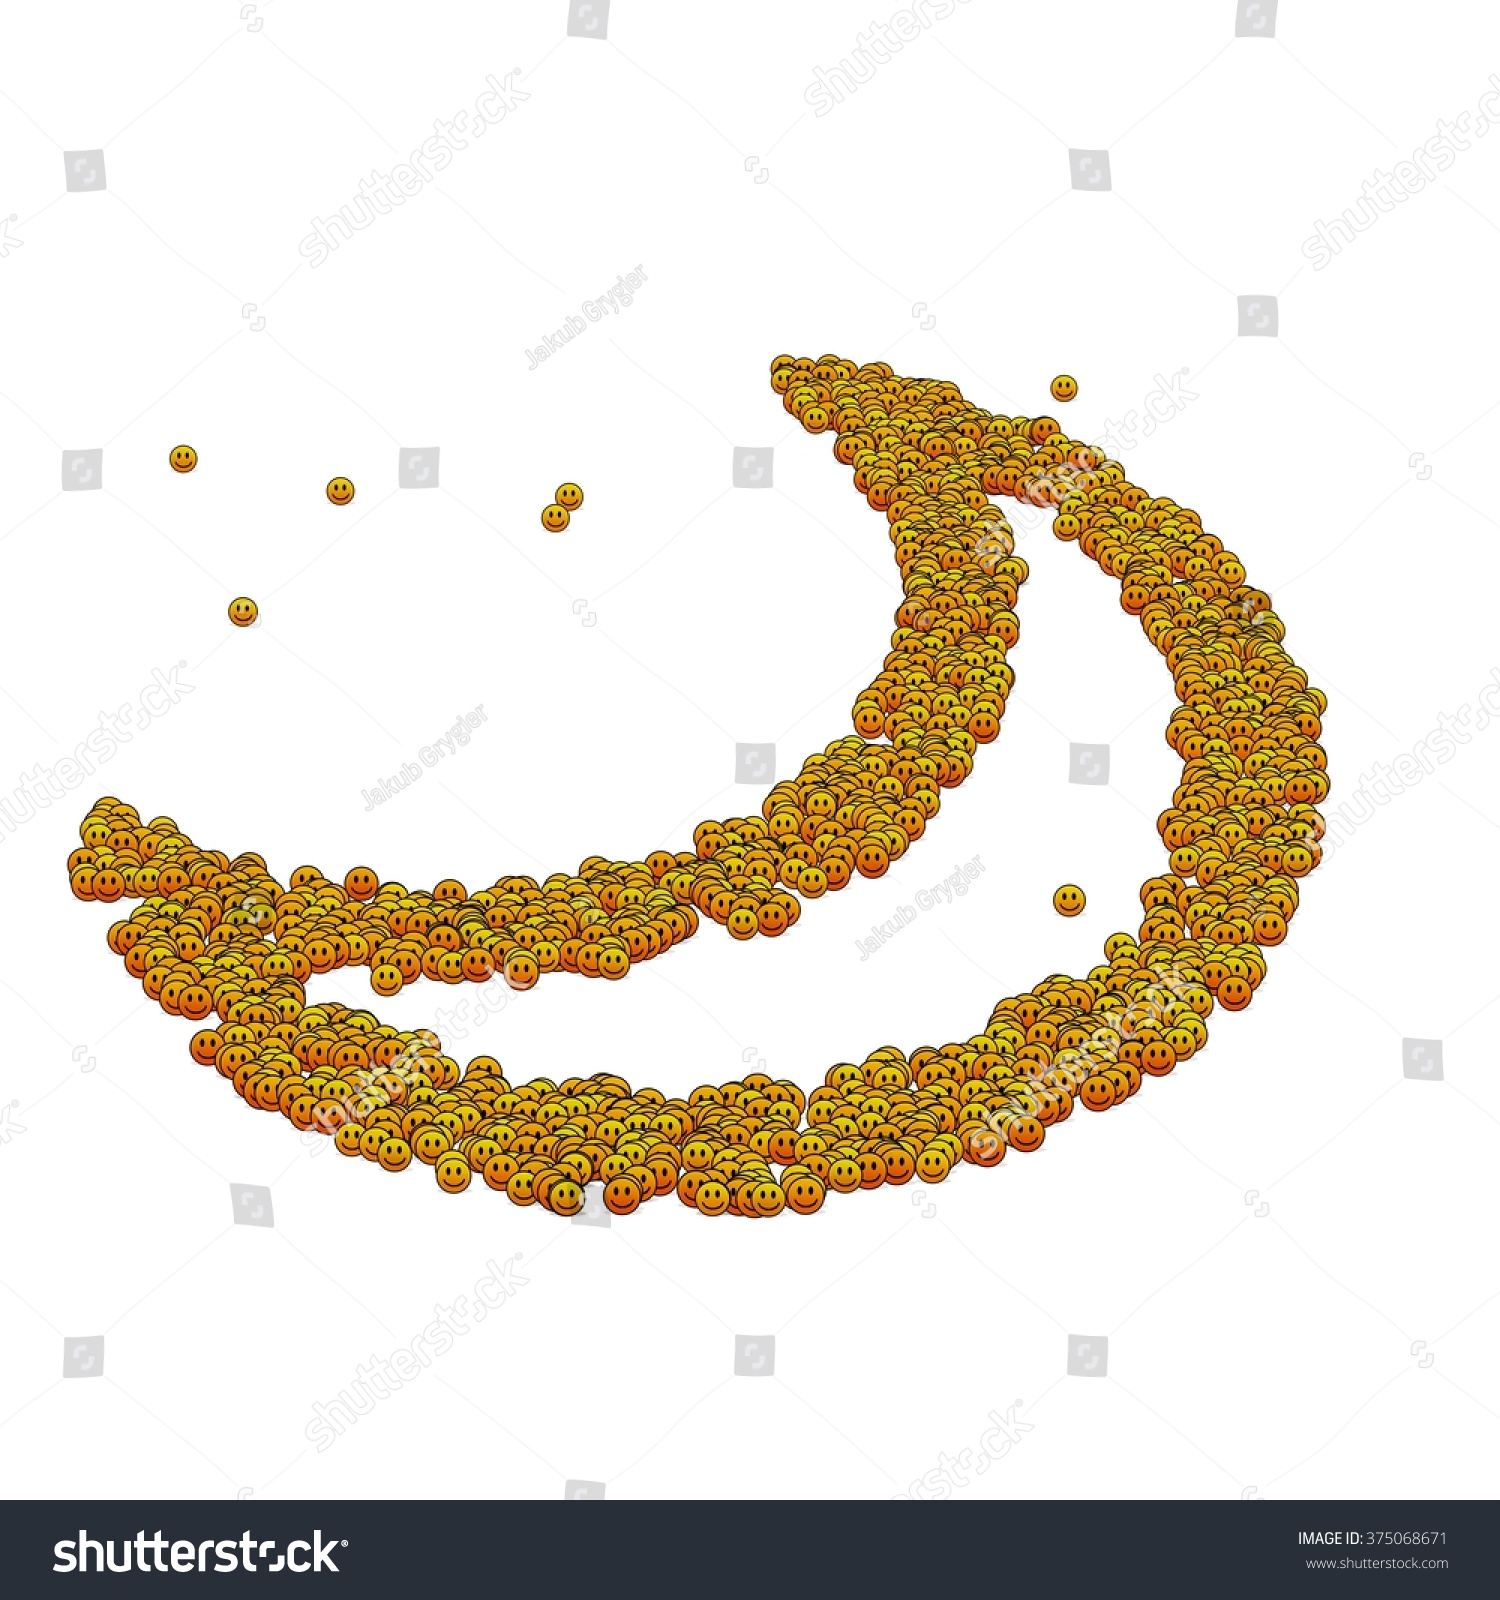 Moon crescent symbol glyph out tiny stock illustration 375068671 moon crescent symbol glyph out of tiny textures particles representing human and his emotions buycottarizona Image collections